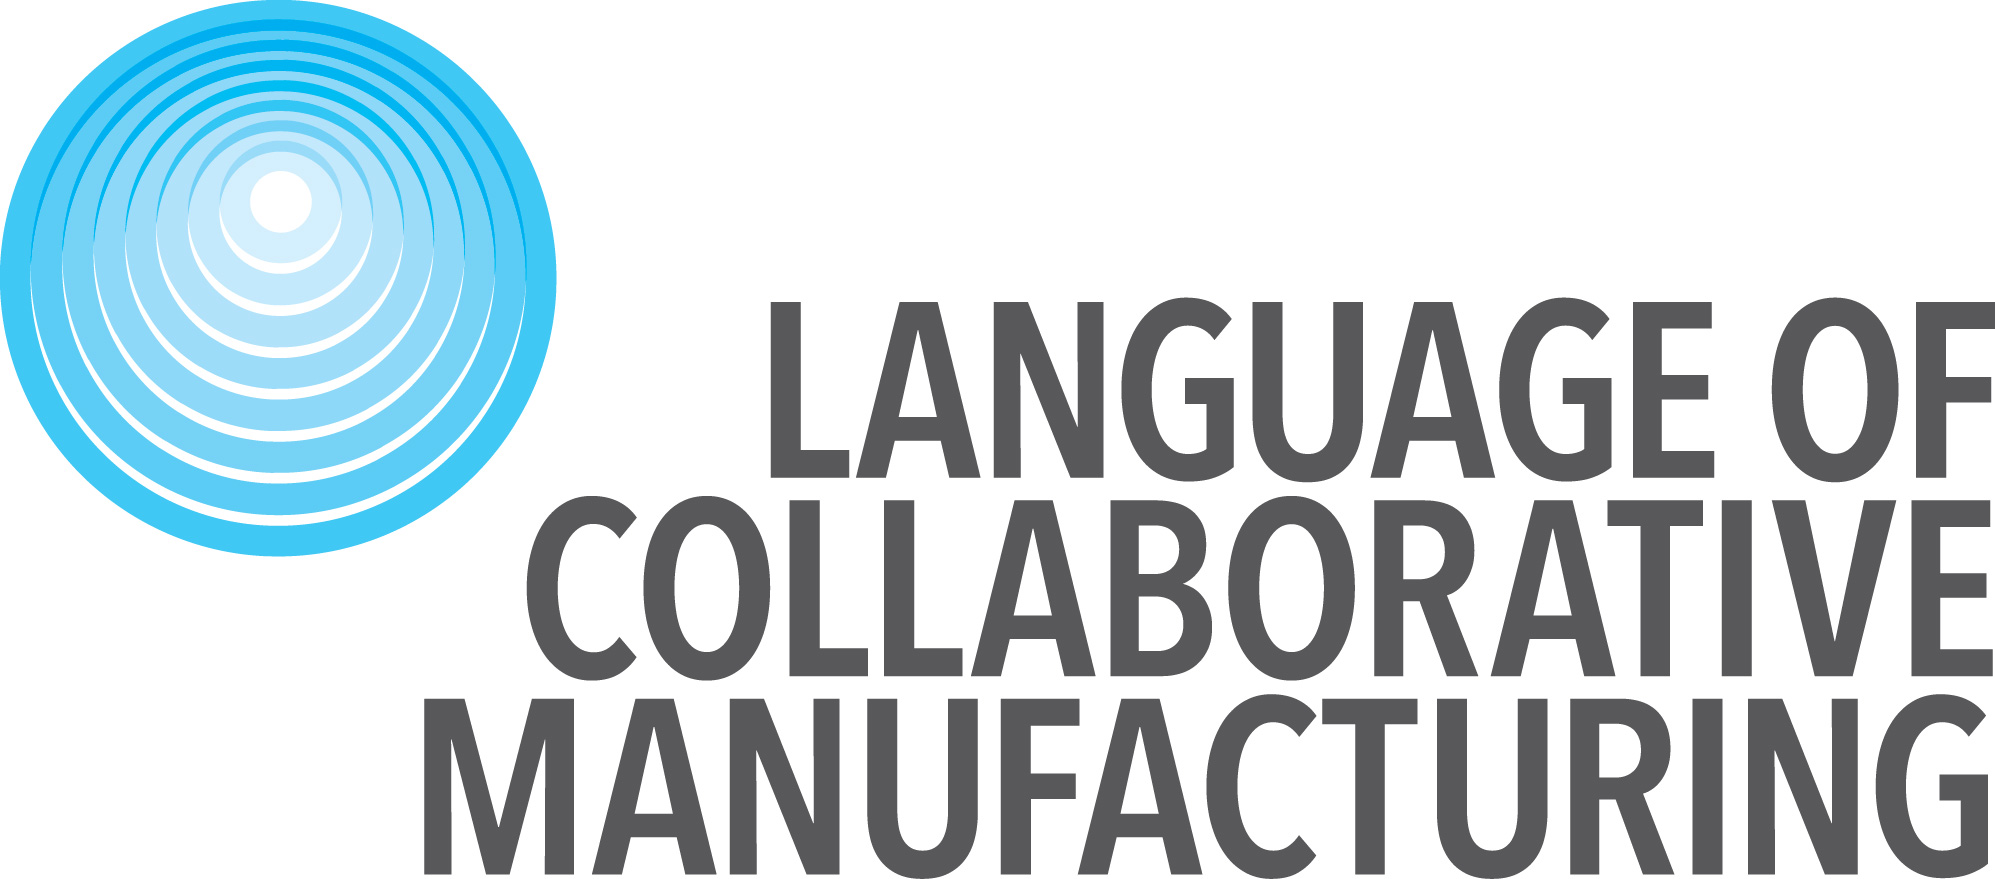 Collaborative Manufacturing Logo